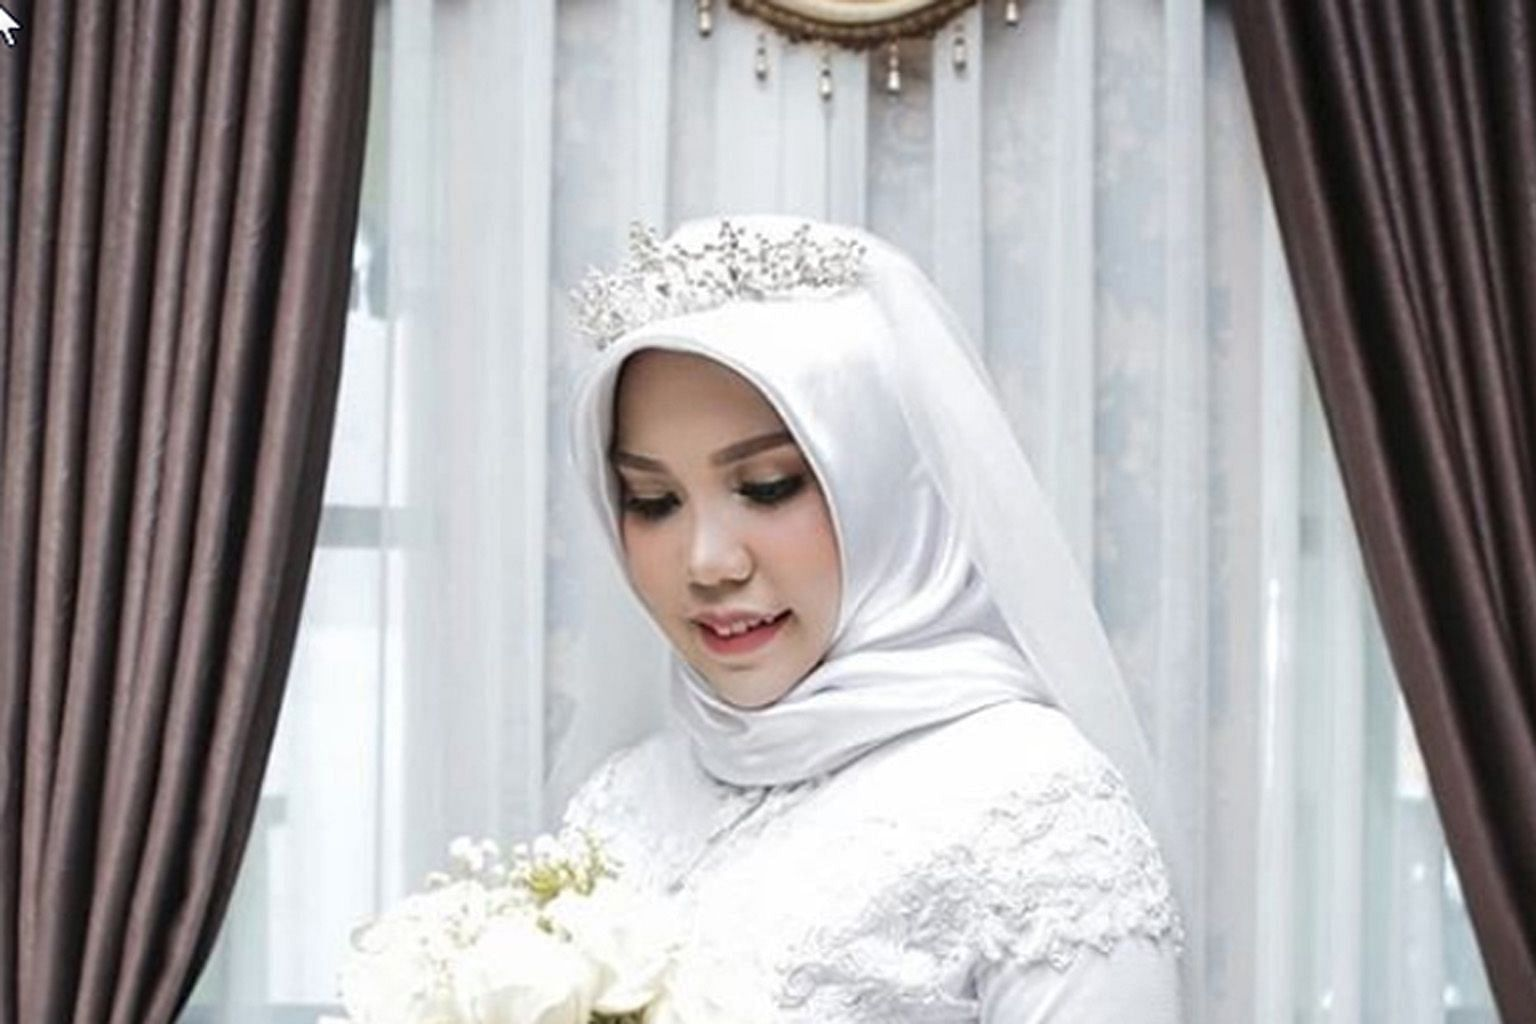 Photos of Ms Intan Syari wearing a white wedding dress and holding white roses went viral on social media in Indonesia.